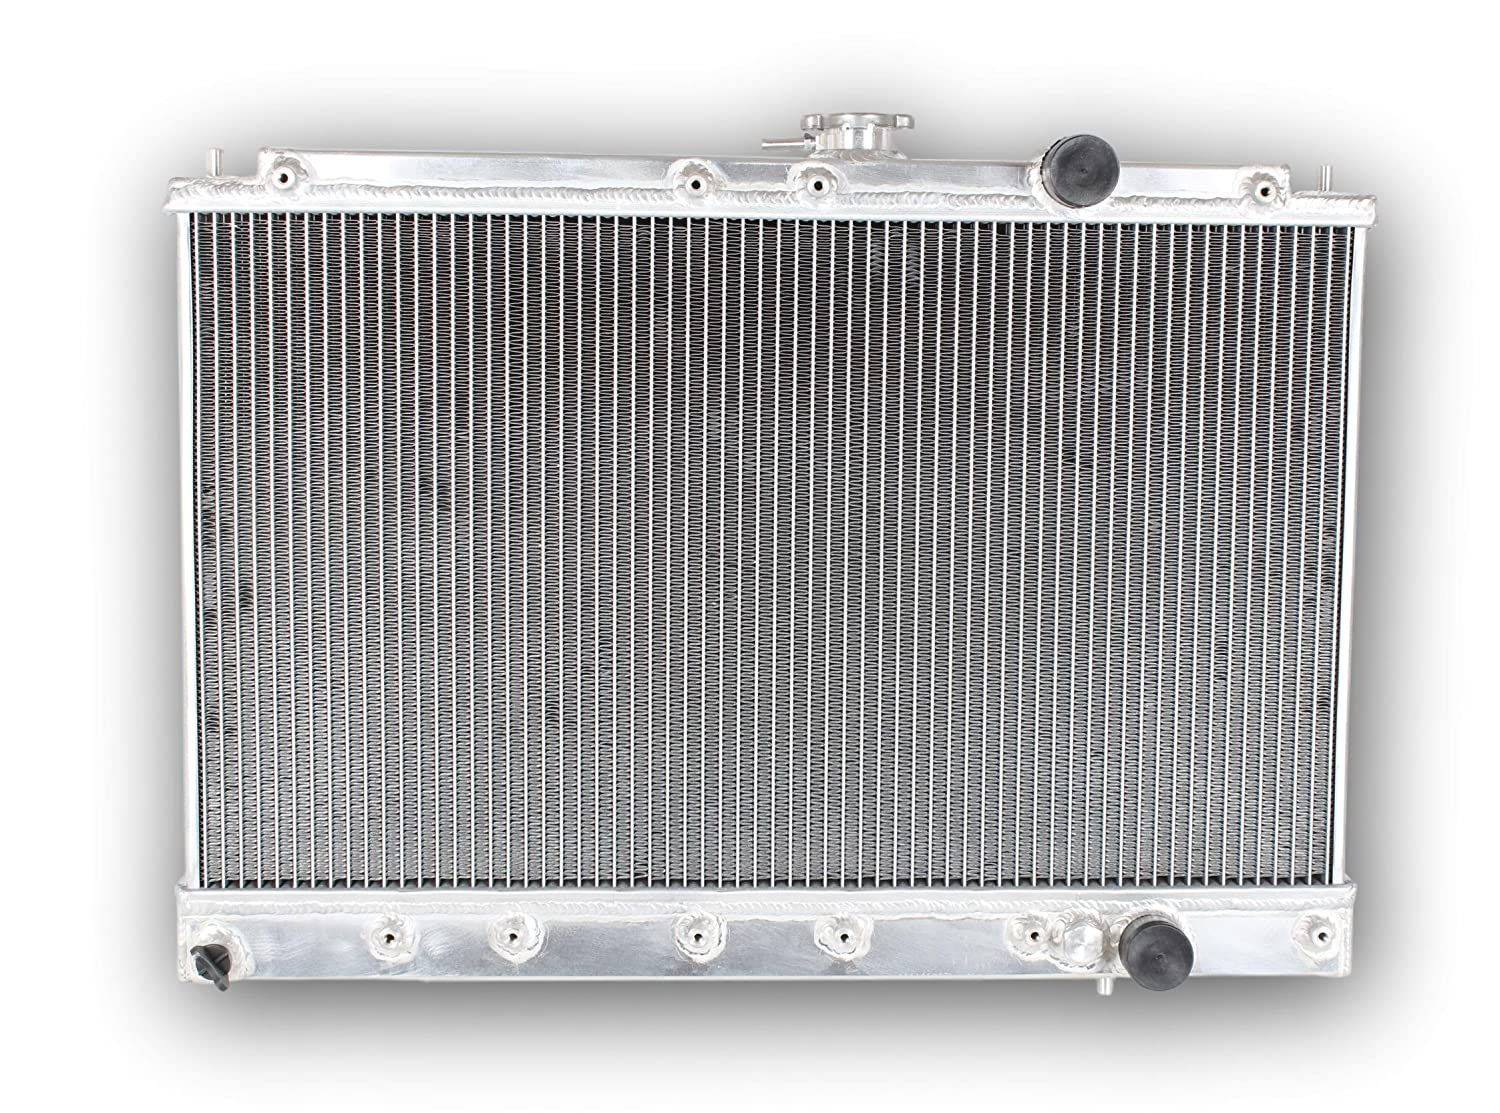 Amazon.com: OPL HPR035 Aluminum Radiator For Mitsubishi Galant VR-4 (Manual  Transmission): Automotive